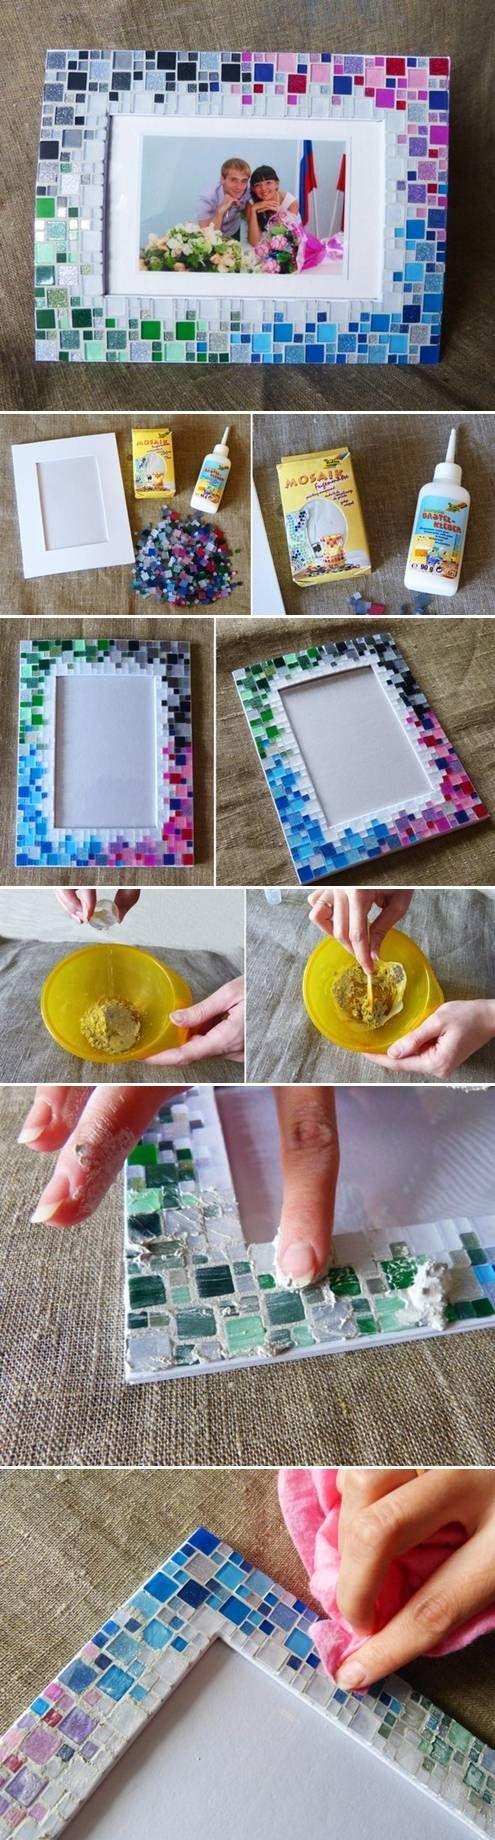 Diy colorful mosaic picture frame cute colorful colors diy frame diy colorful mosaic picture frame cute colorful colors diy frame crafts easy crafts diy ideas diy solutioingenieria